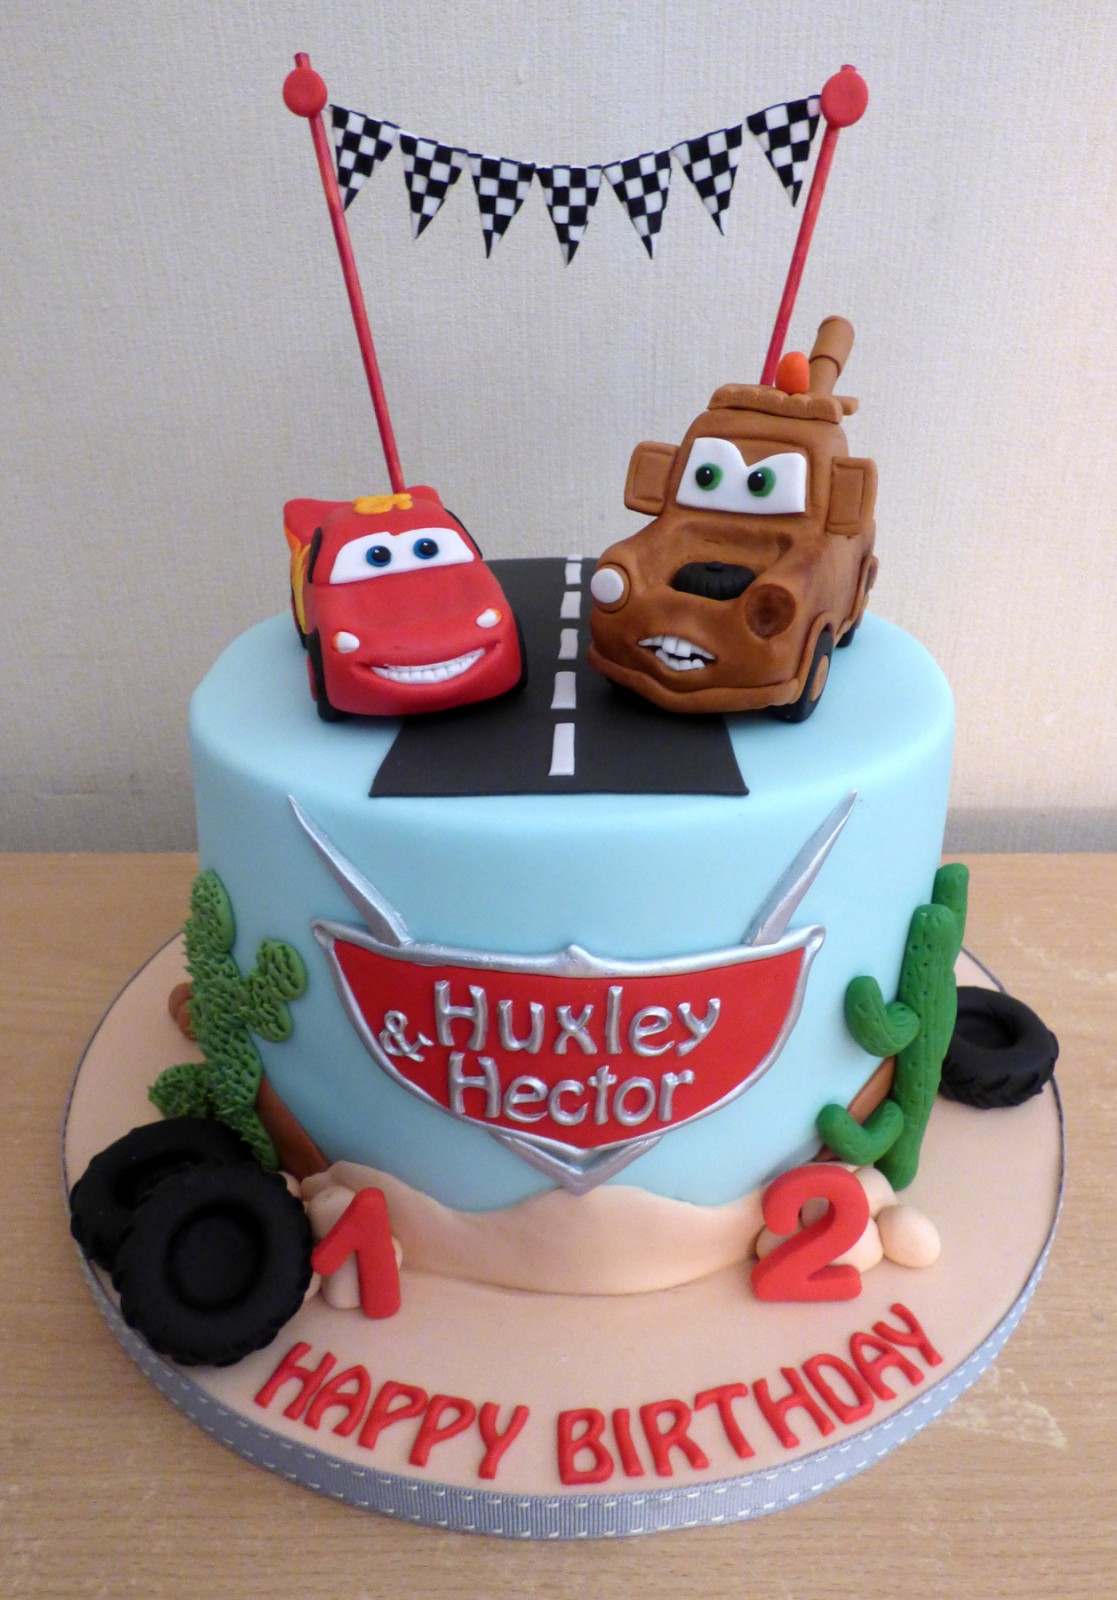 Outstanding Disney Pixar Cars Themed Birthday Cake Susies Cakes Funny Birthday Cards Online Alyptdamsfinfo